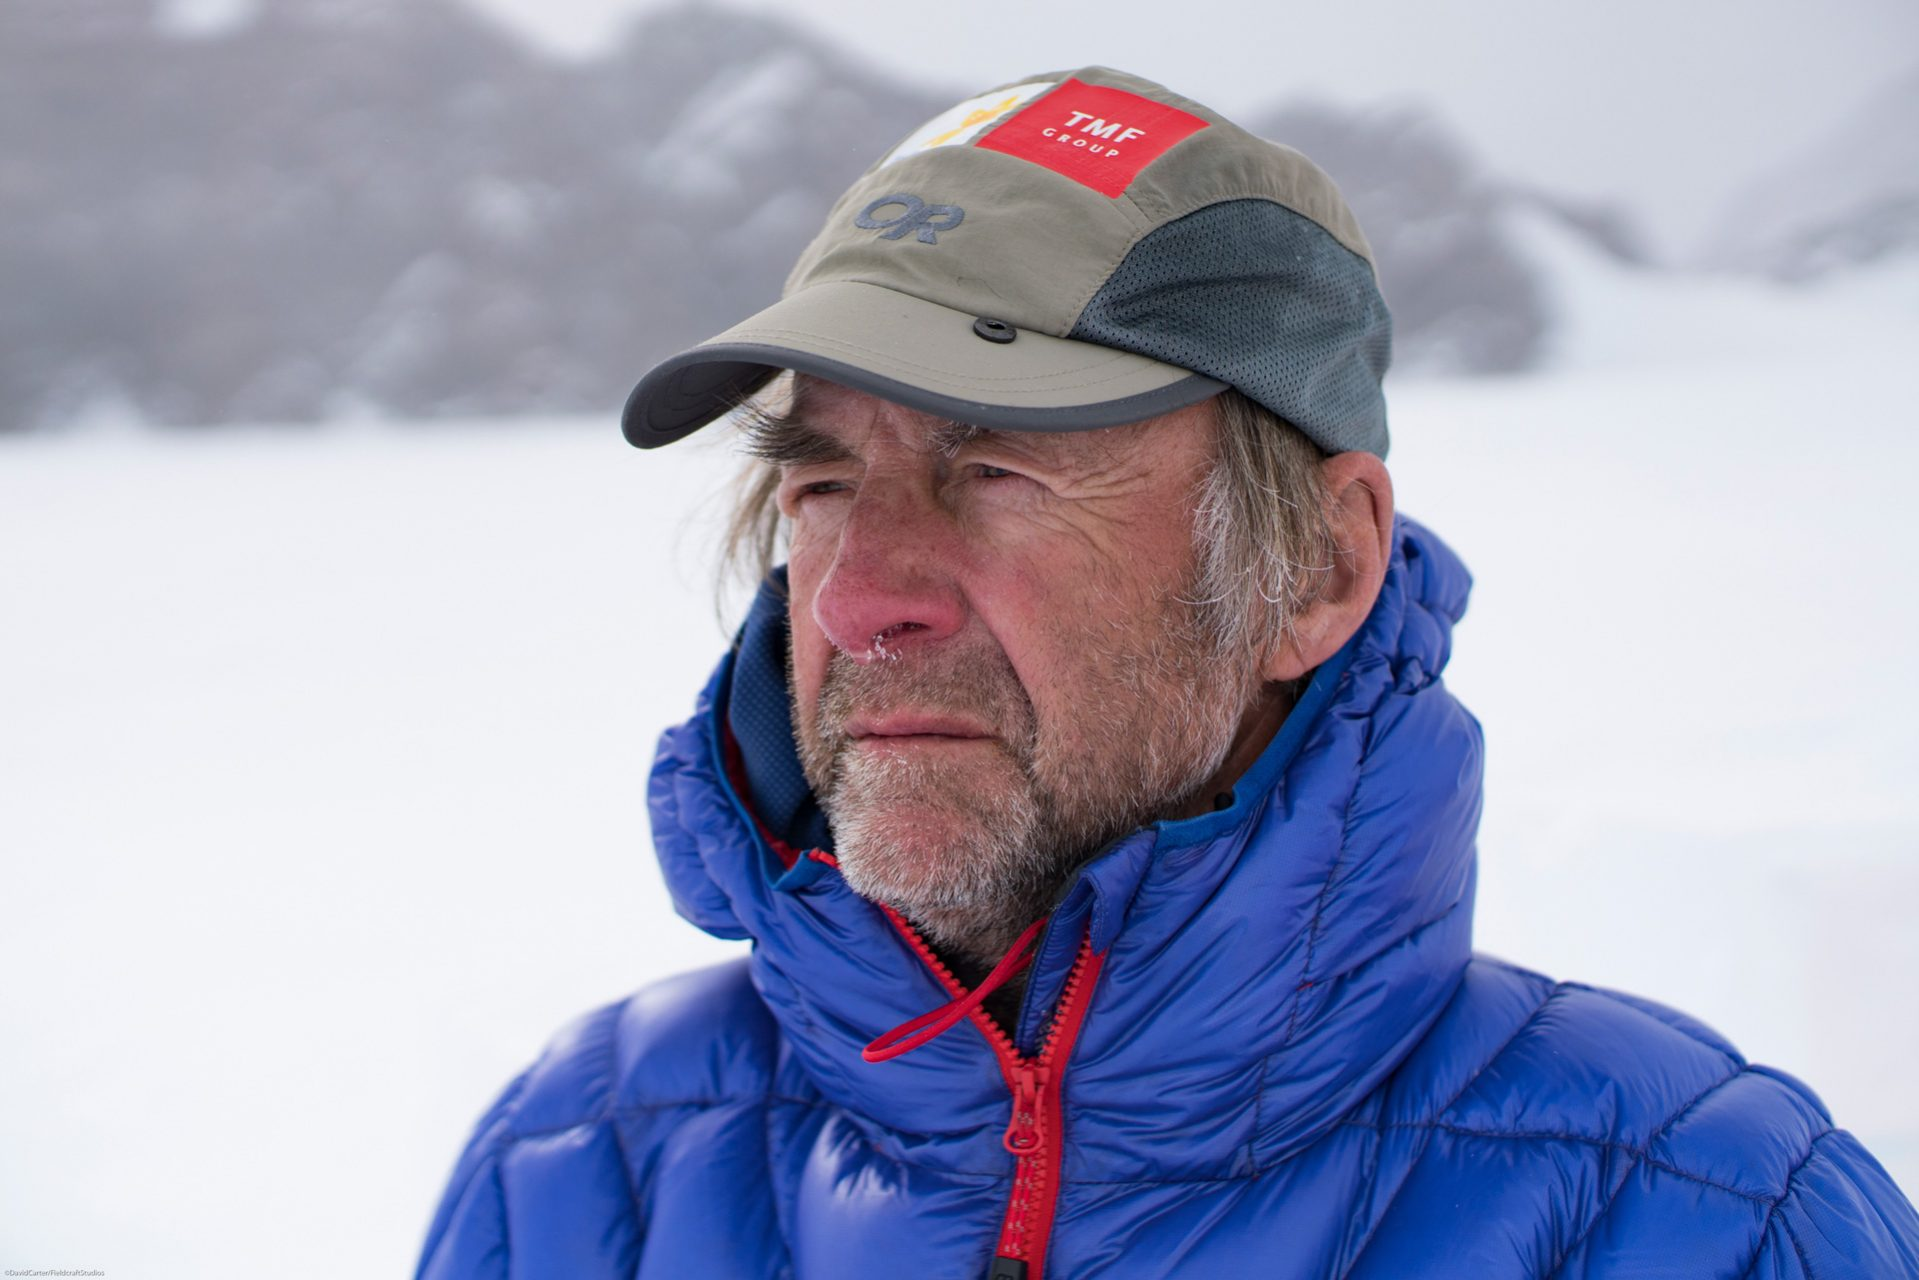 Filming with Ranulph Fiennes in Antarctica - just before climb of Mount Vinson